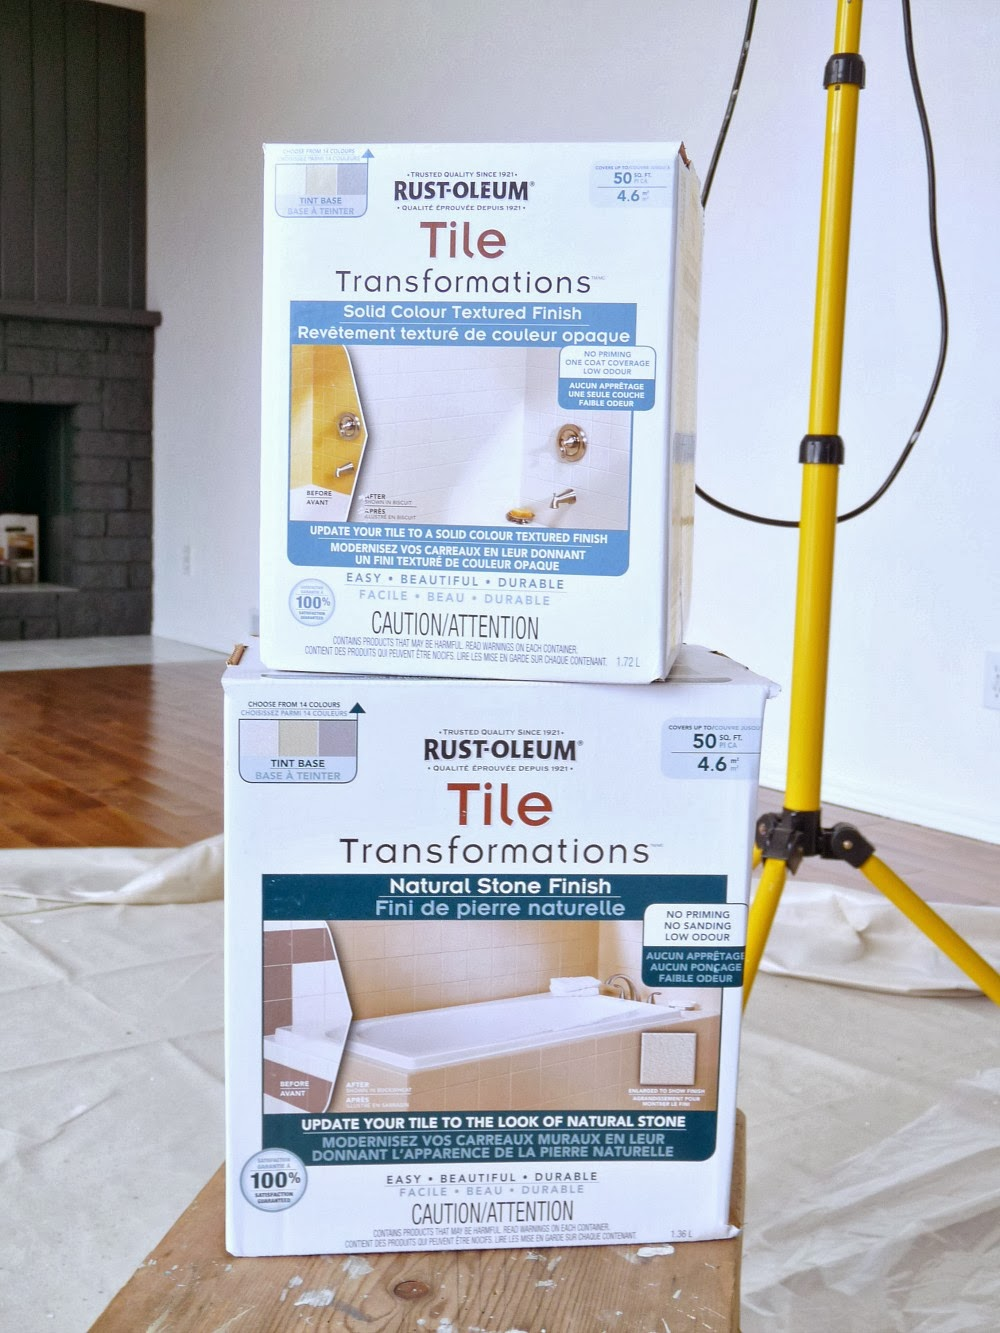 Rust-Oleum Tile Transformations Kit Product Review